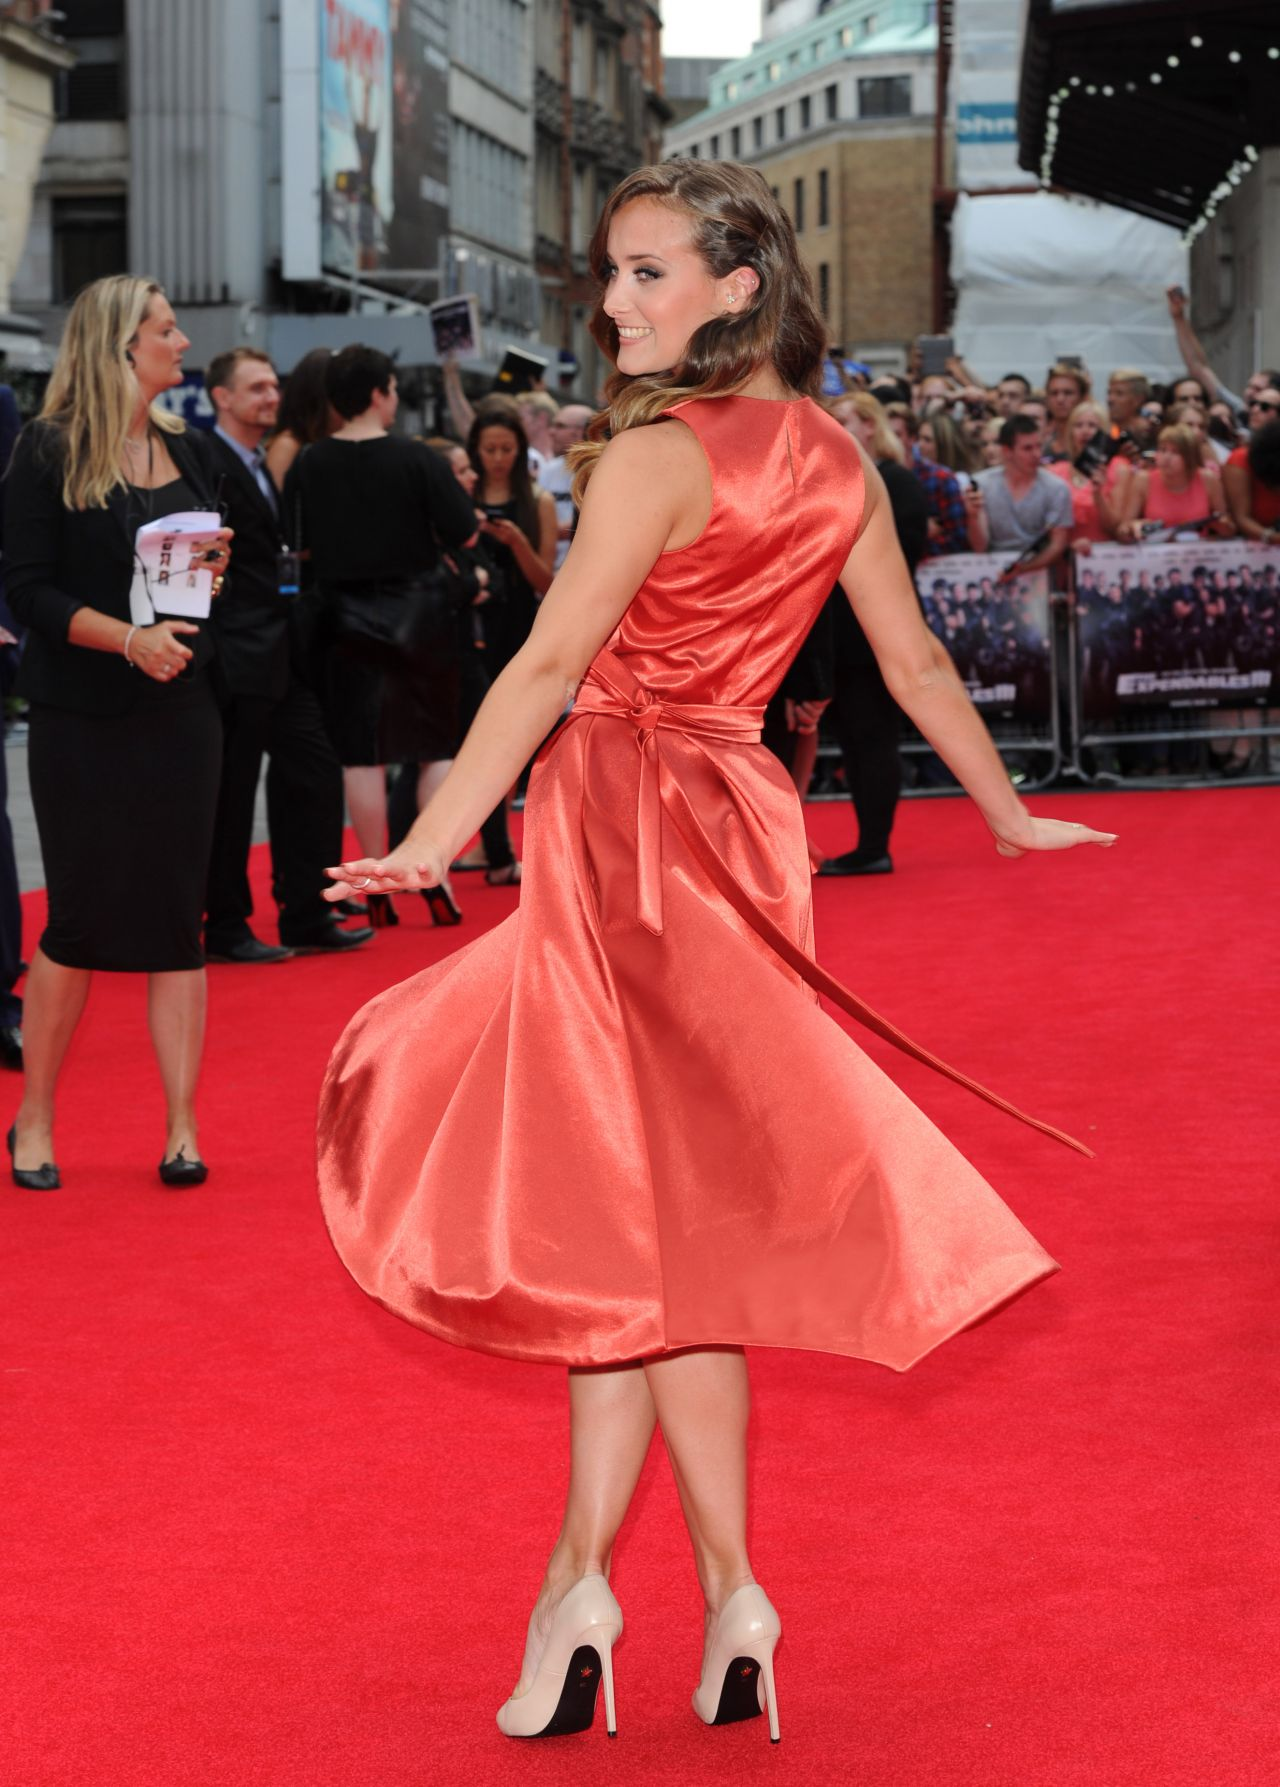 April Pearson The Expendables 3 World Premiere In London